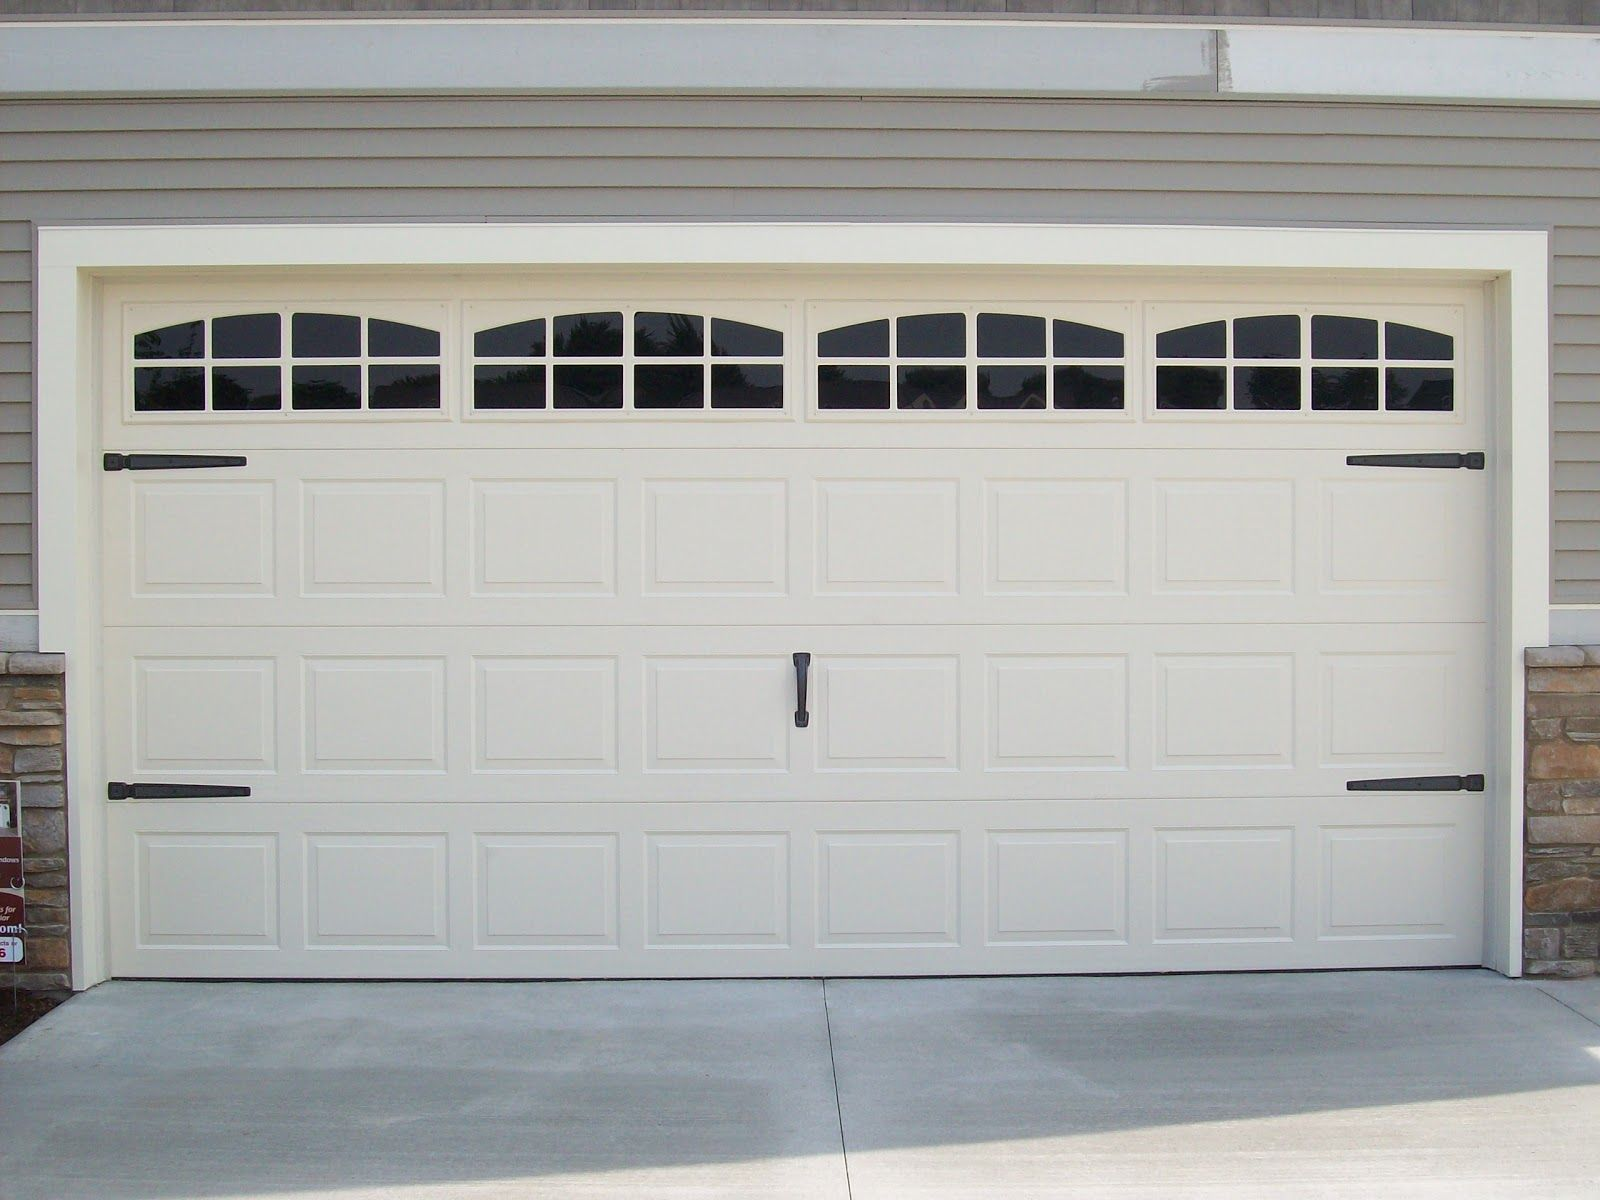 Makeover Your Garage Door With Coach House Accents Truth In Advertising :  This Blog Post Is